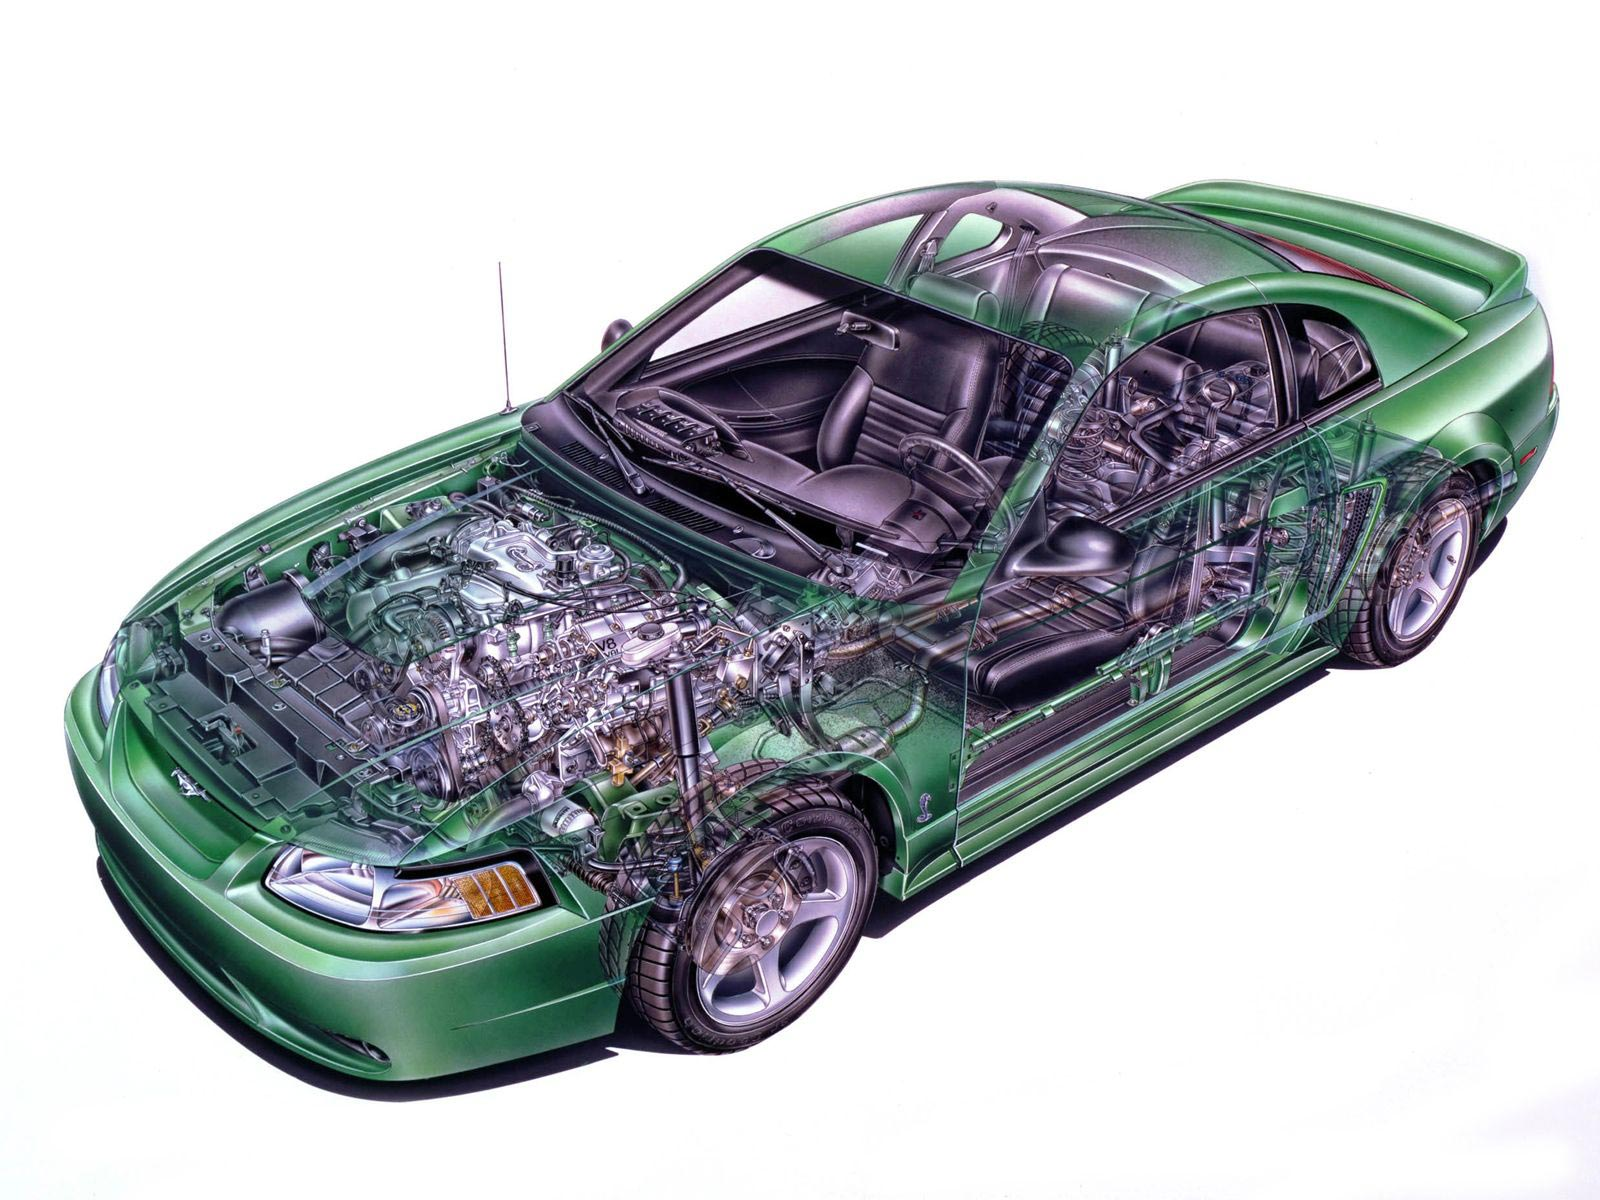 Ford Mustang SVT Cobra cutaway drawing